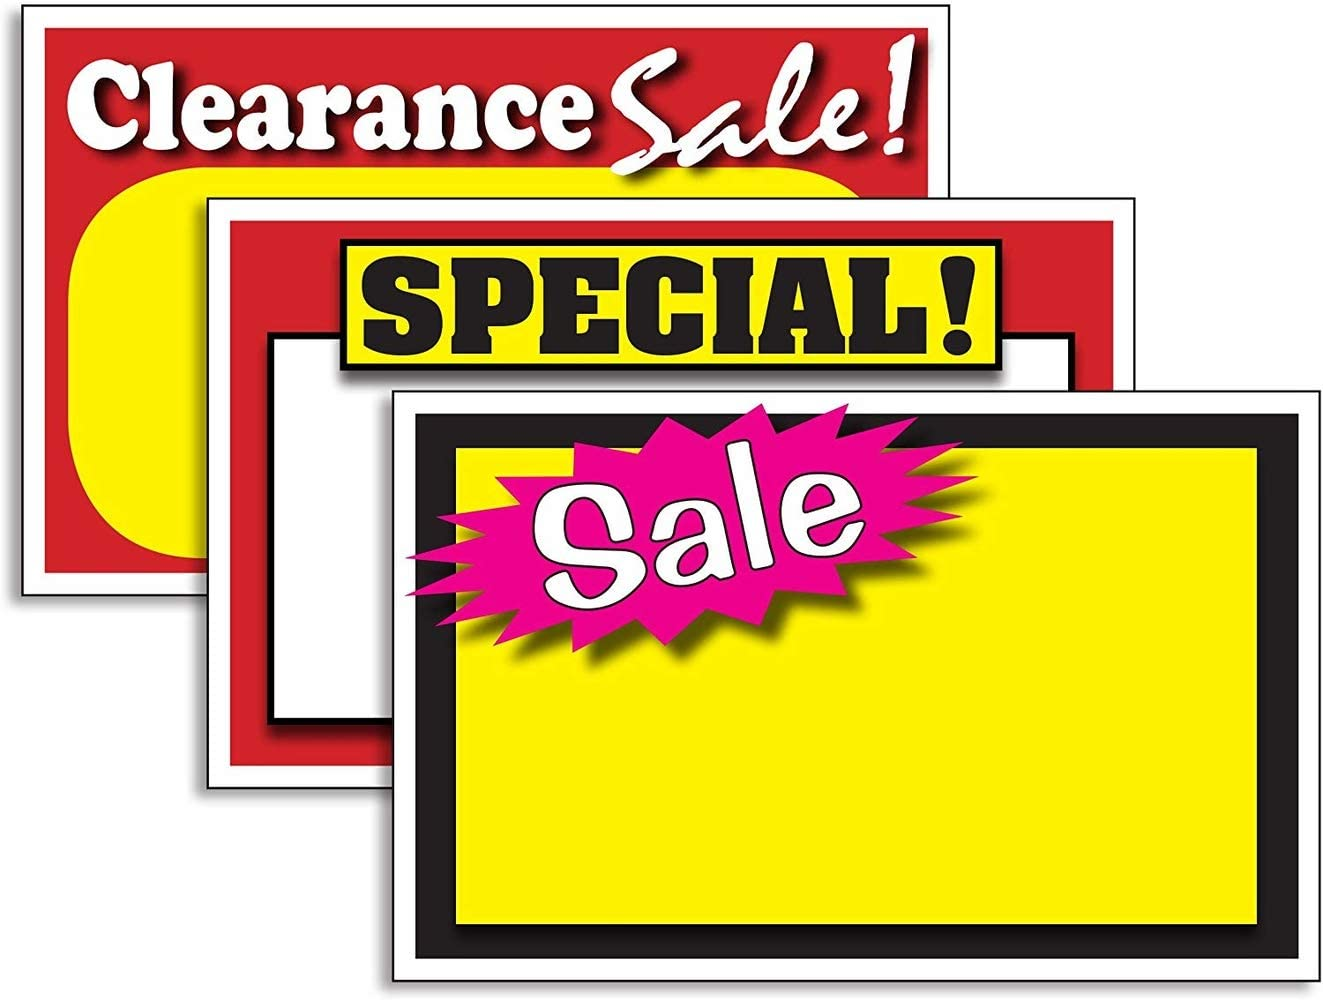 RETAIL STORE SALE PRICE DISPLAY CASE /& SHELF SIGNS TAGS QUALITY! 200 SPECIAL